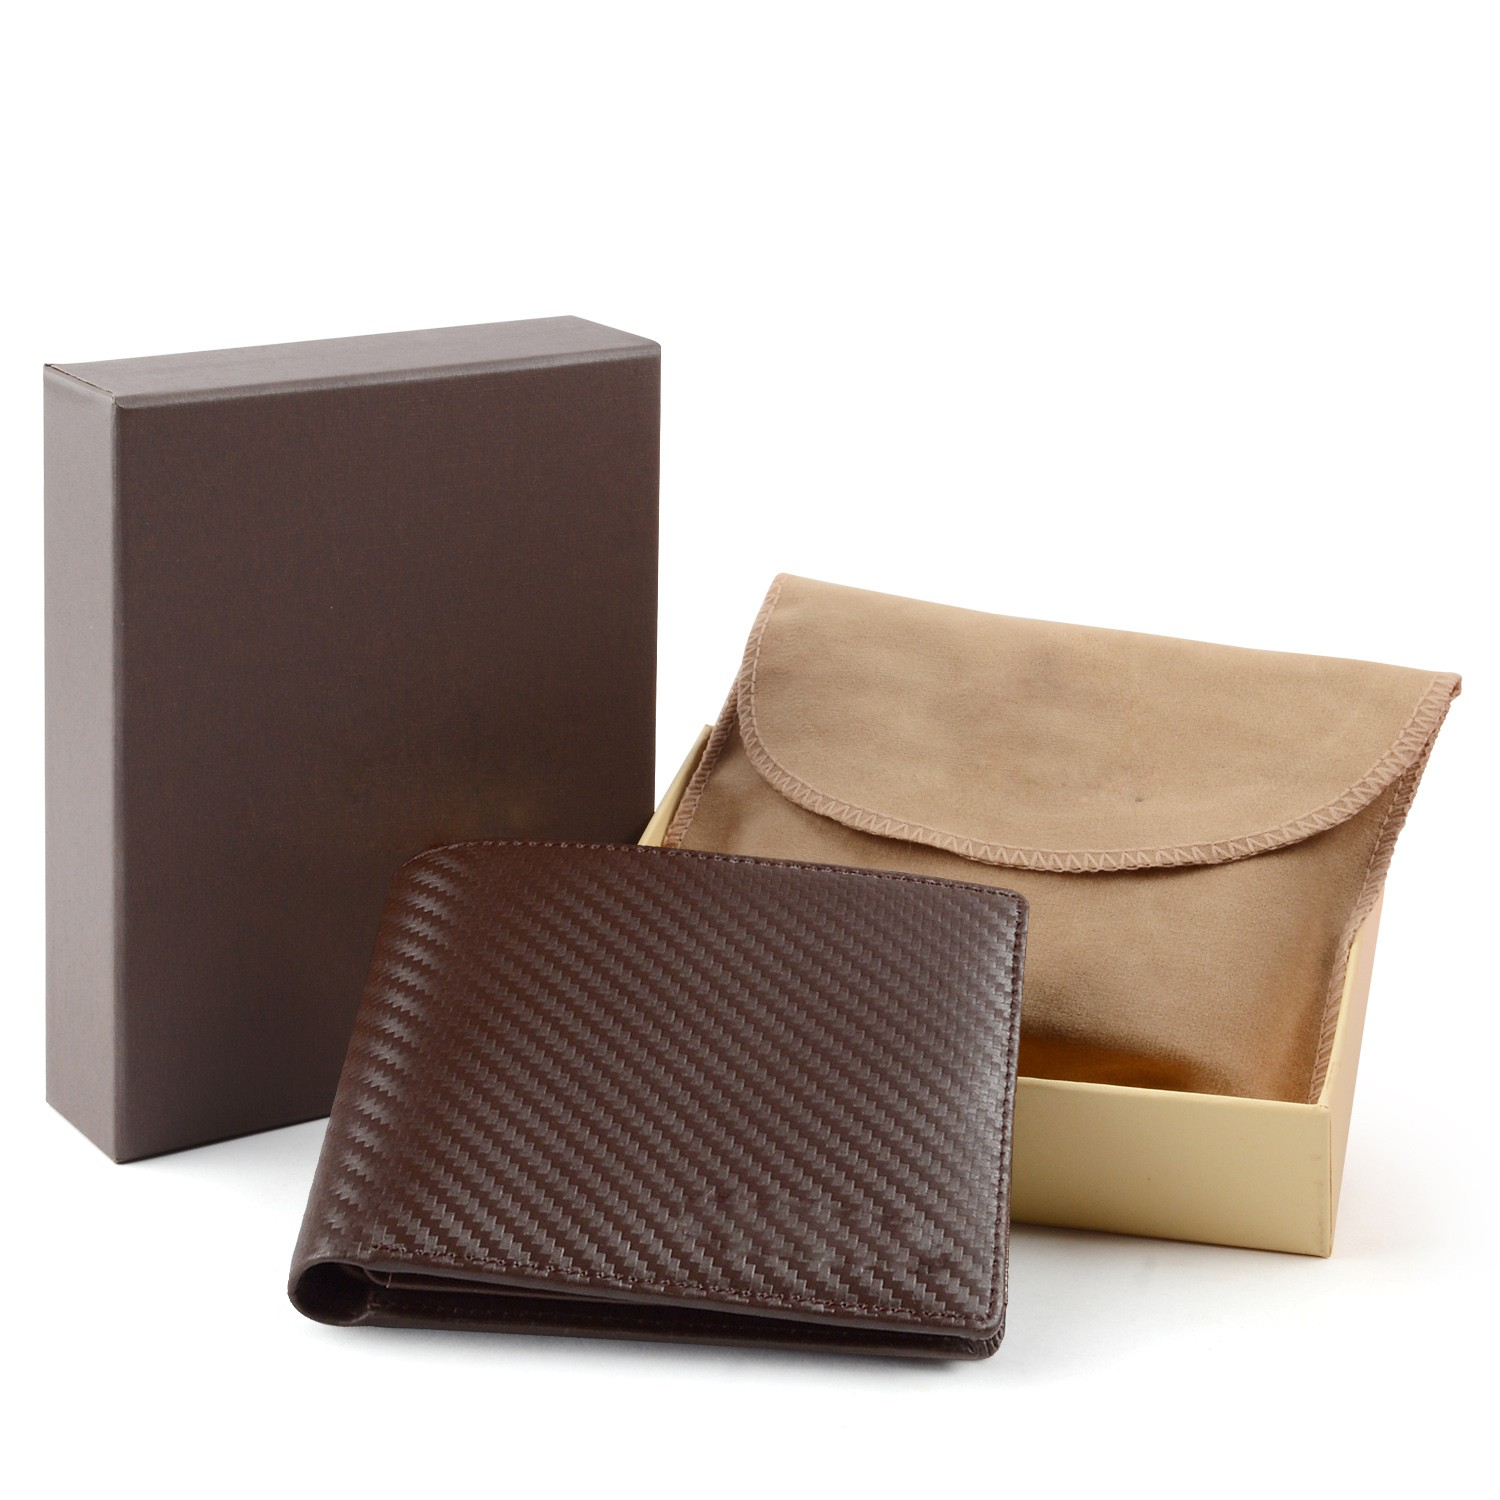 AIVI multi-function custom leather wallets for sale for men-8